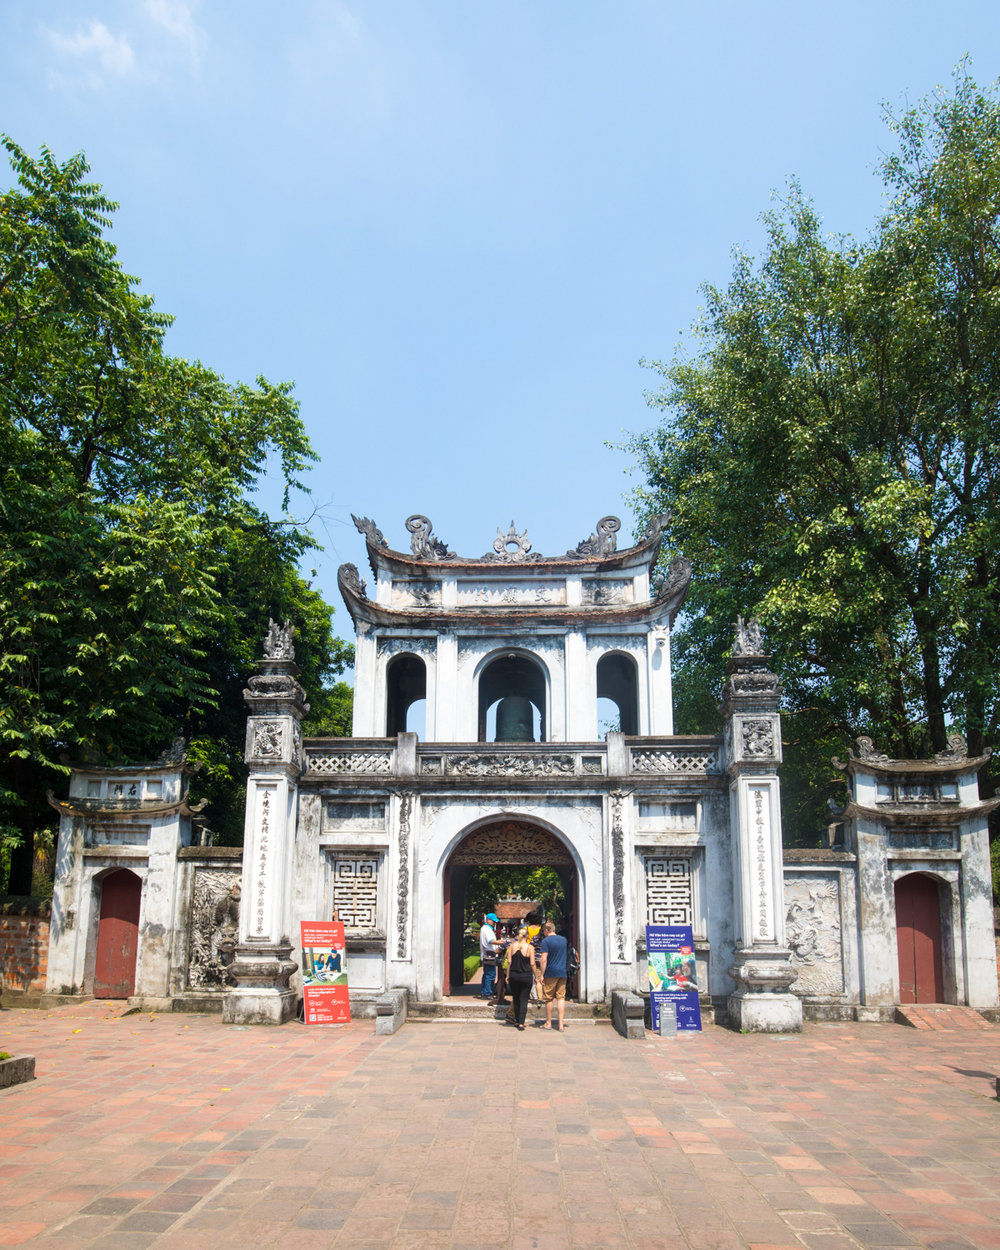 Places to visit in Hanoi - Temple of Literature in Hanoi